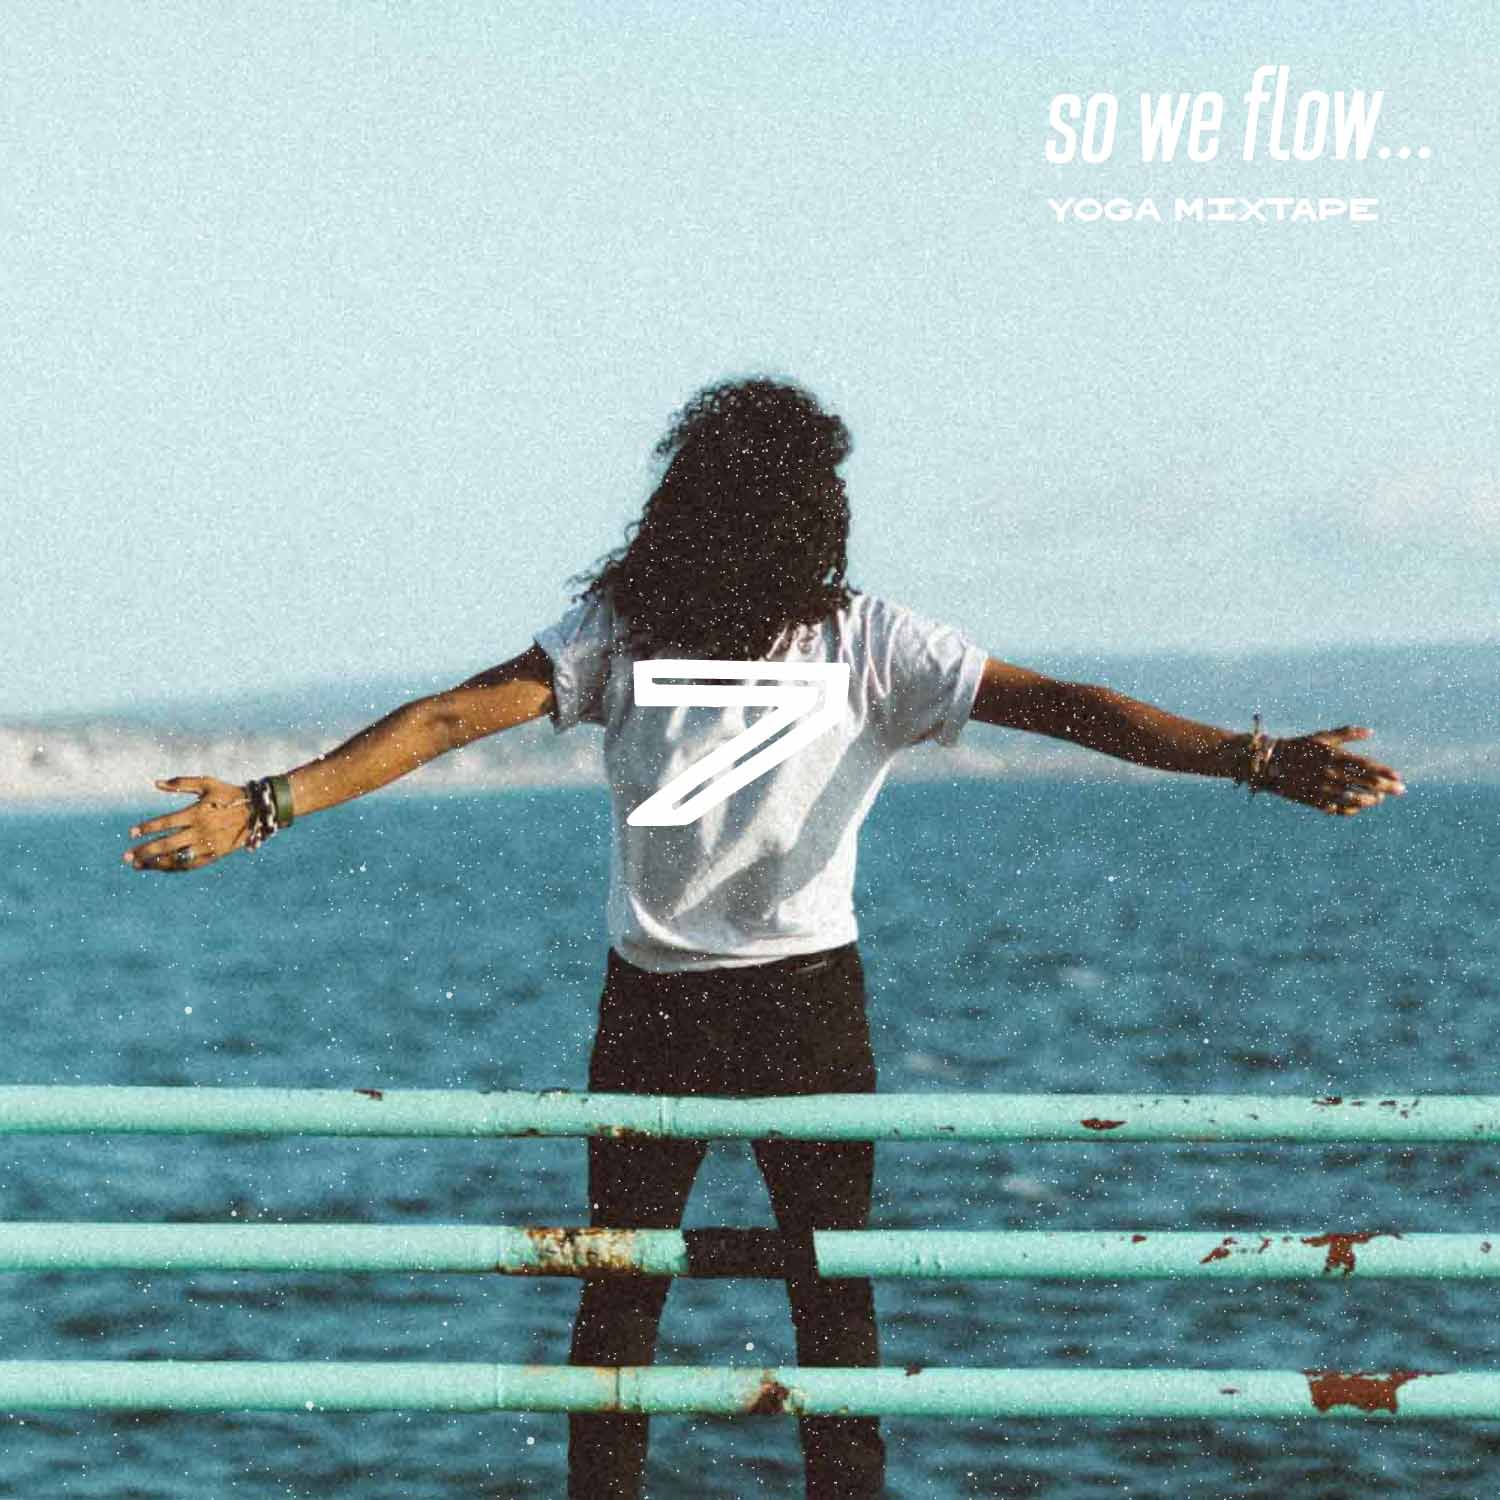 so we flow... Yoga mixtape - 01/18 - Let go - album art